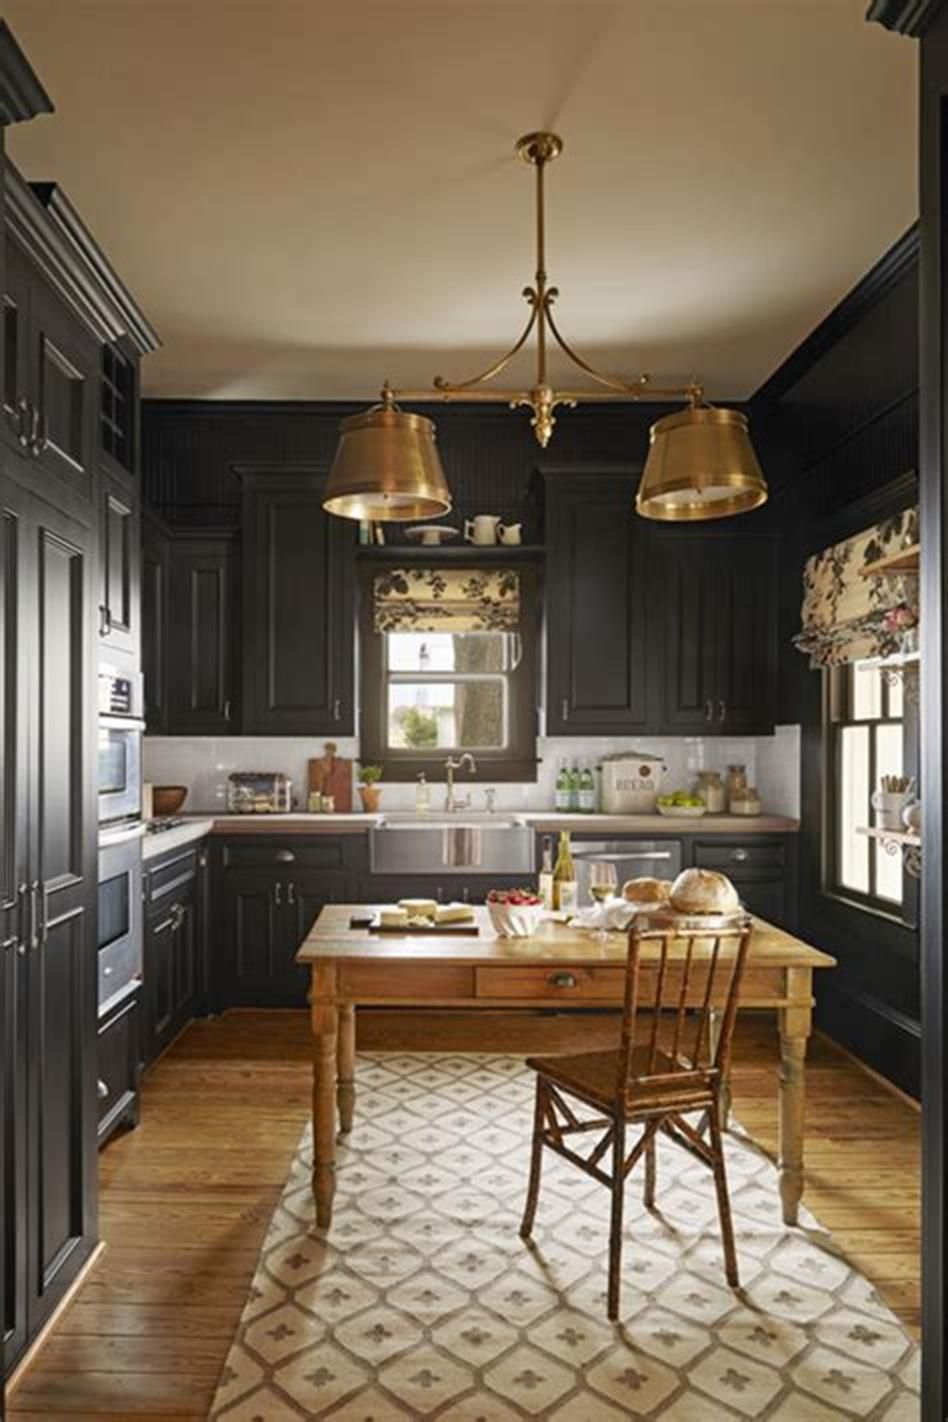 37 inspiring country kitchen decorating ideas farmhouse on kitchen remodeling ideas and designs lowe s id=79328